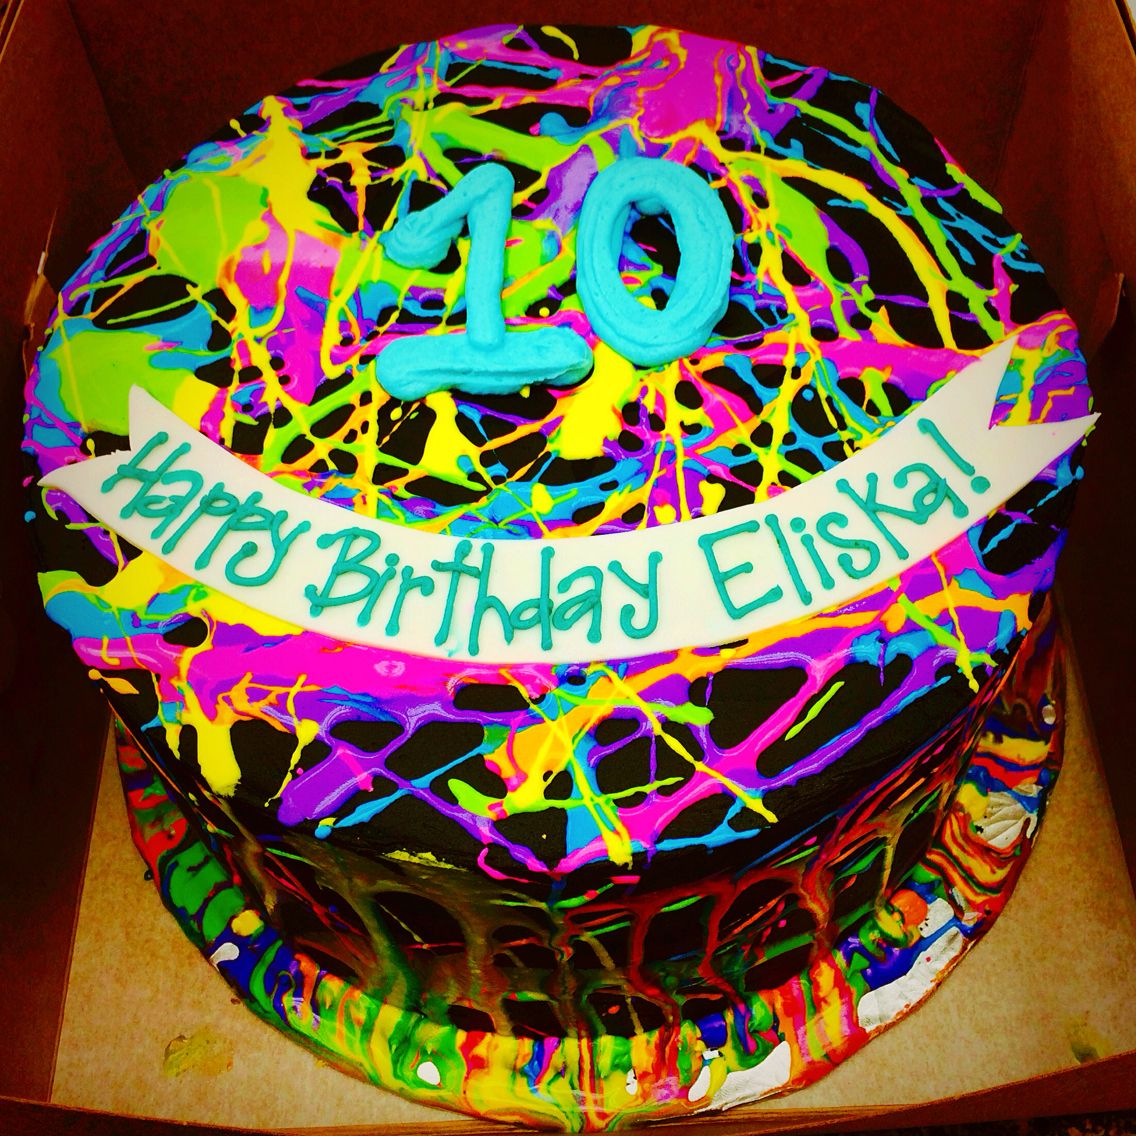 Black Buttercream With Neon Paint Splattered Birthday Cake By Les